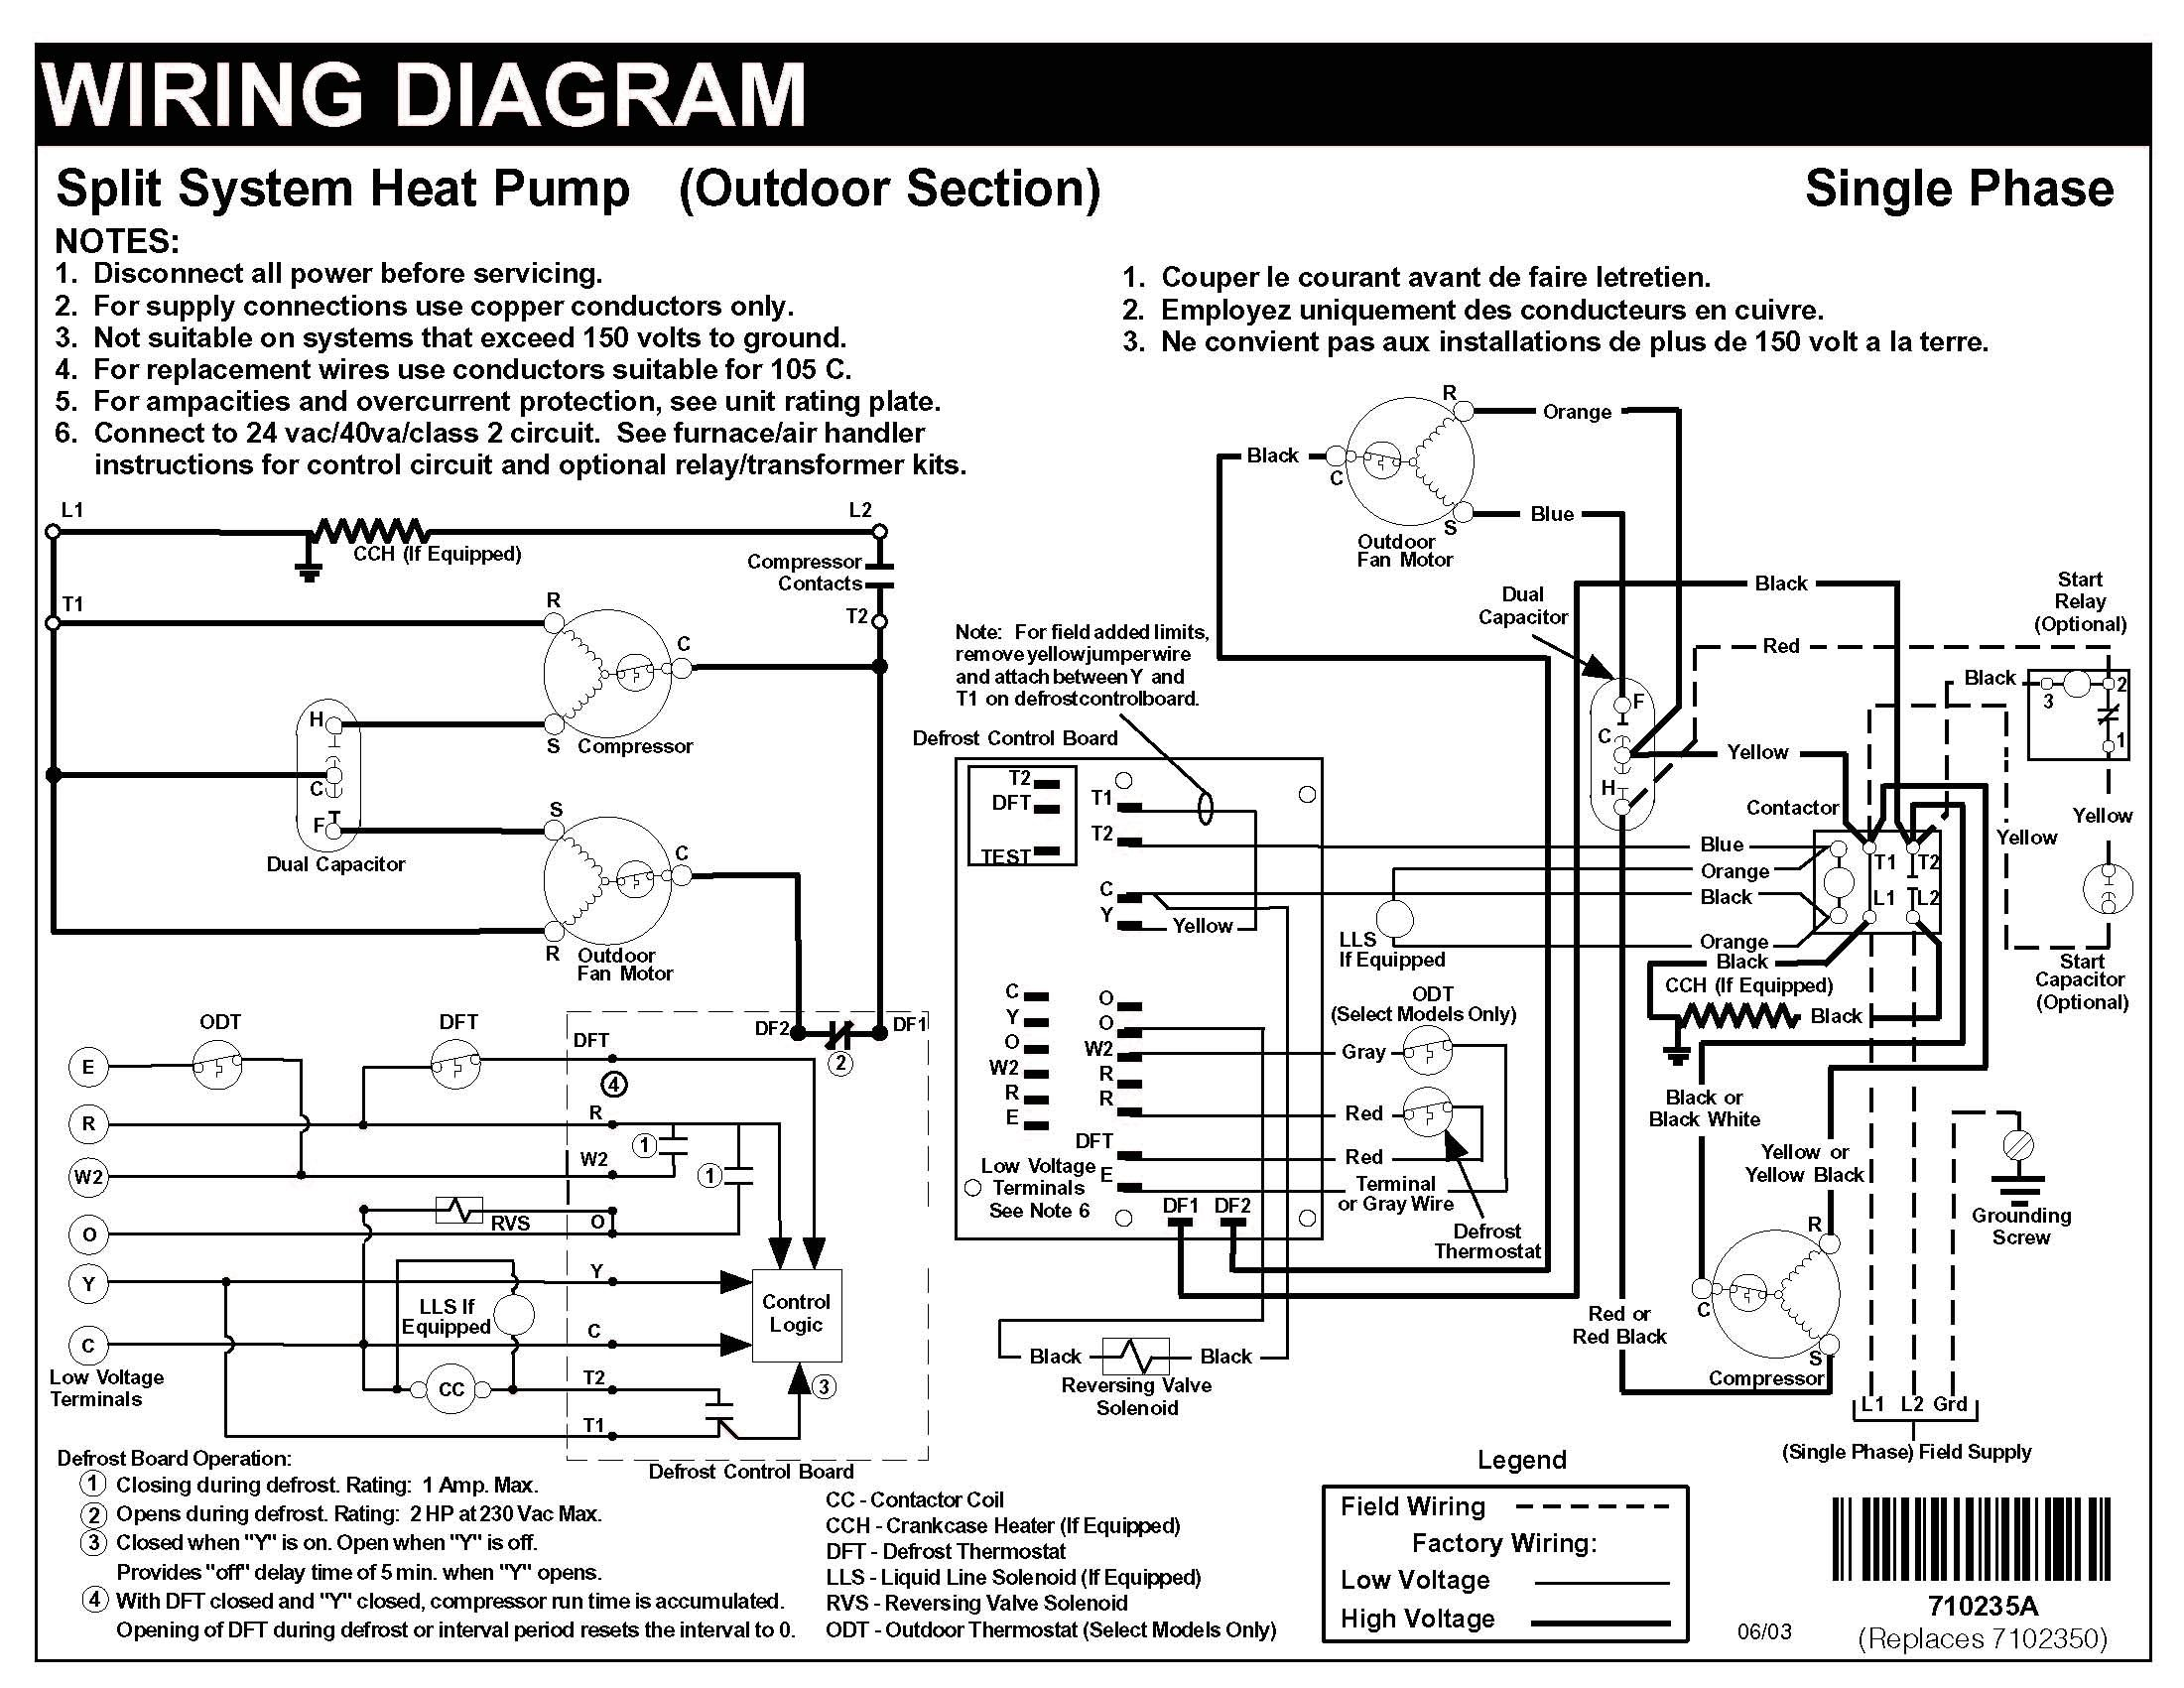 hight resolution of lennox heat pump diagram wiring diagrams scematic lennox cbx diagram heat pumps residential heat pumps heat